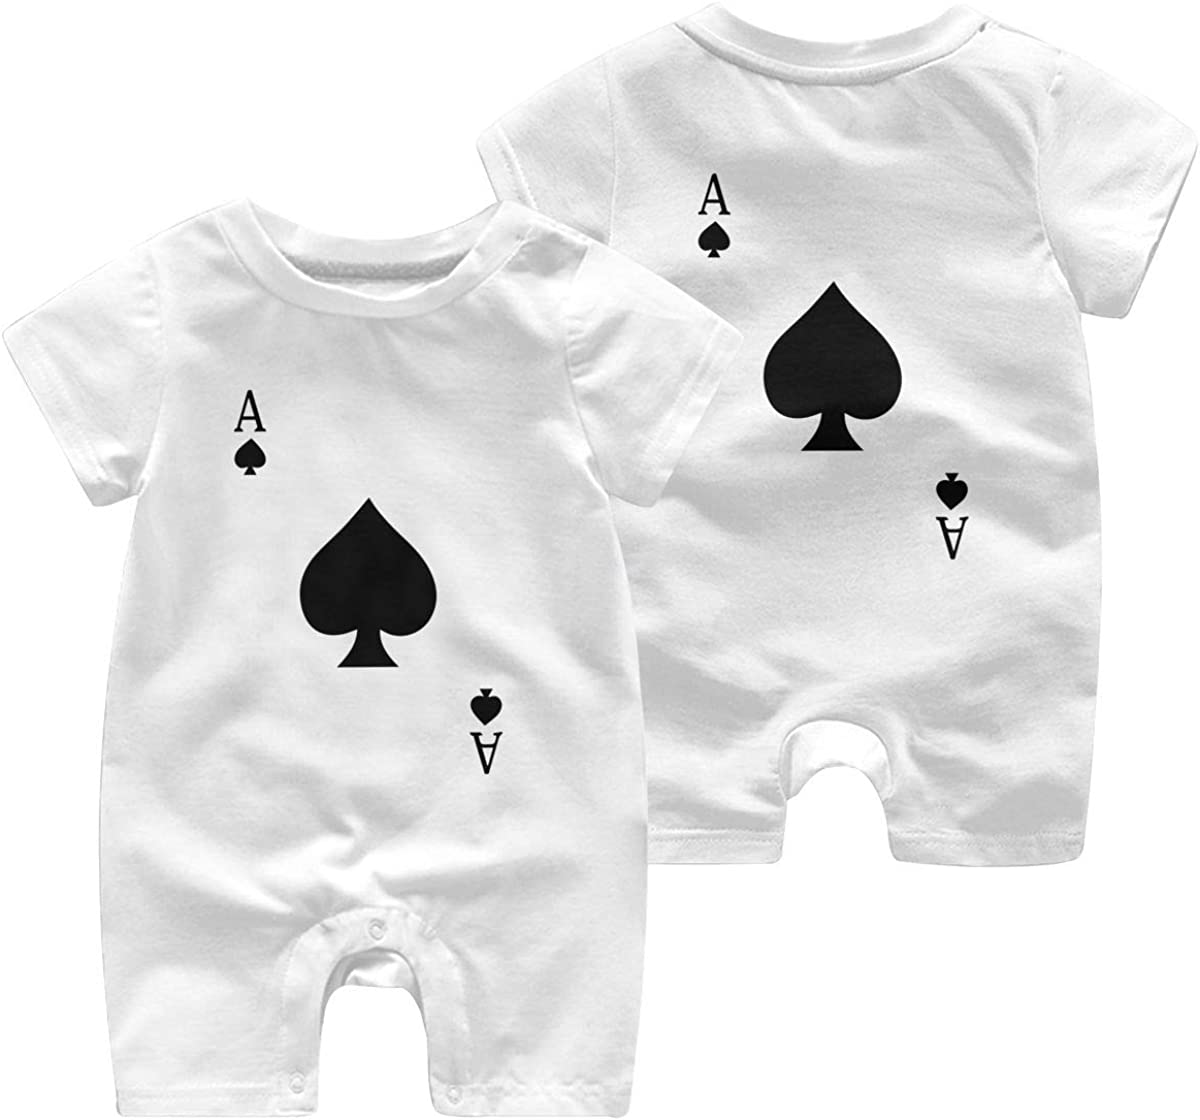 Baby Girls Bodysuits ACE of Spades Poker Baby Rompers